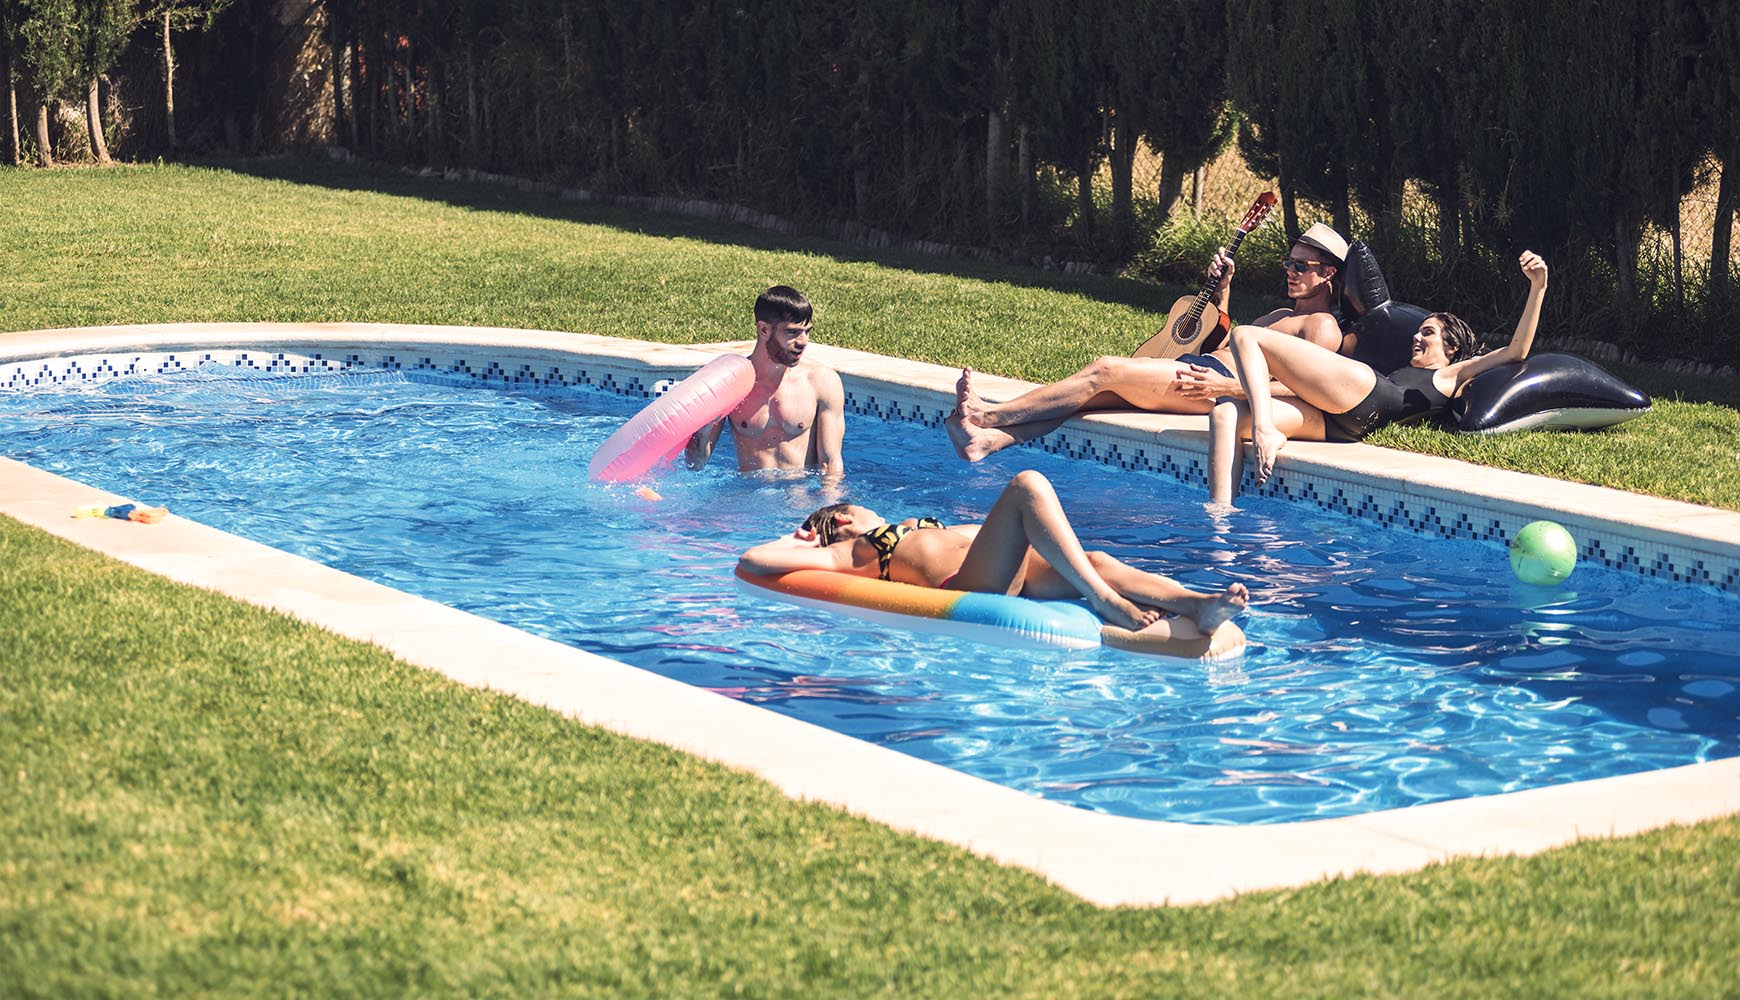 People relaxing in pool together